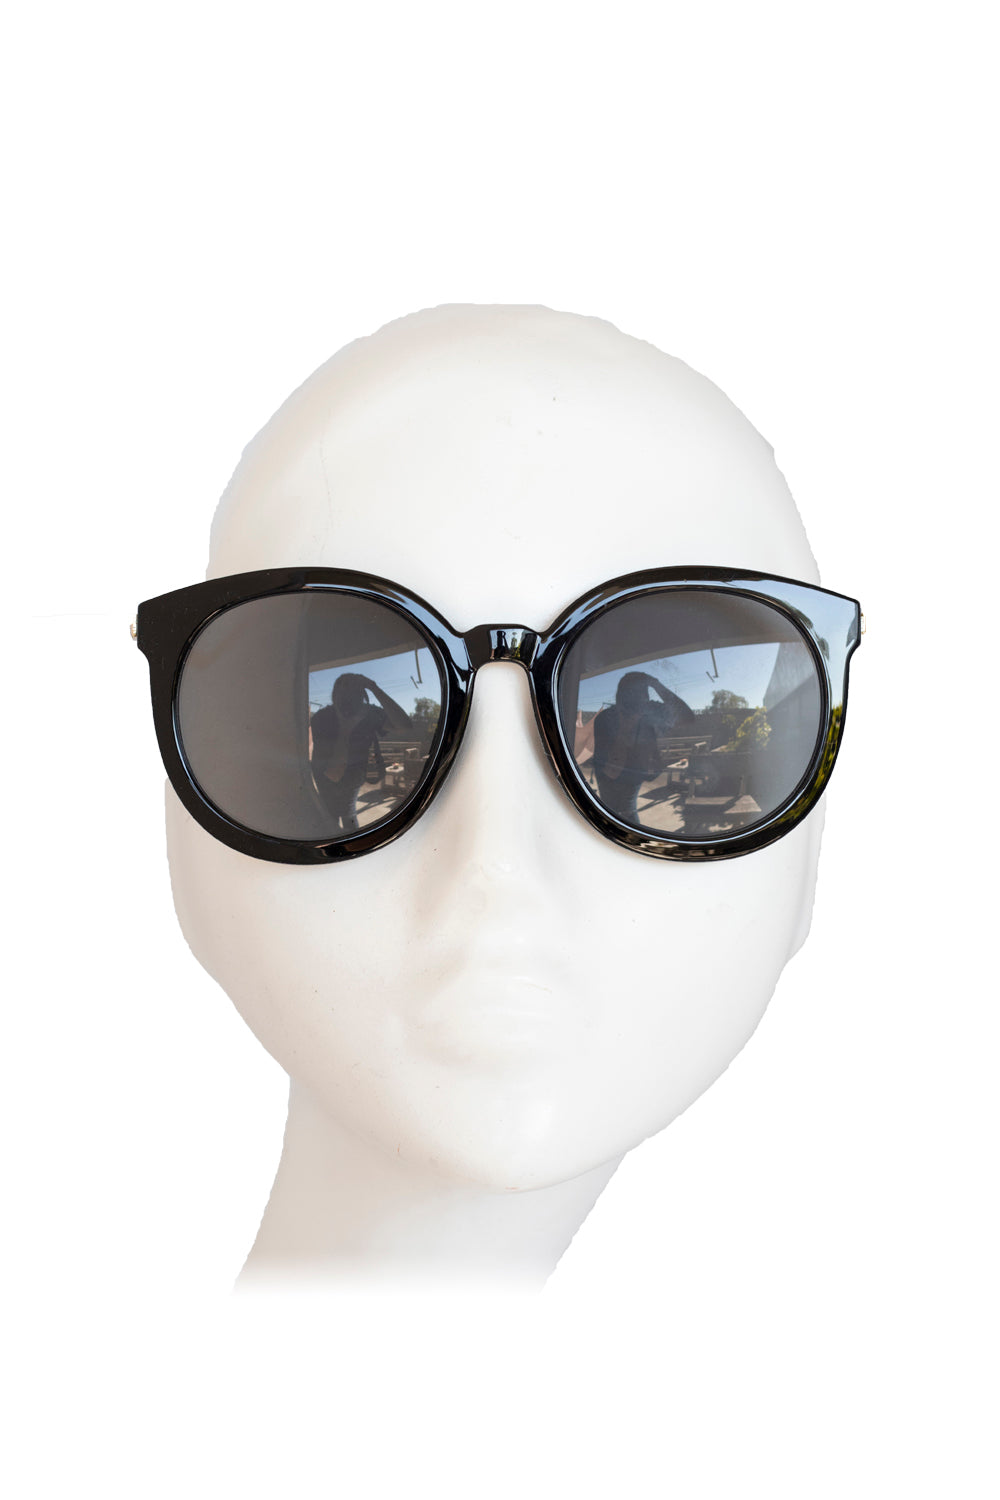 Paris Sunglasses | New Zealand Fashion Designer | Sunglasses | Annah Stretton